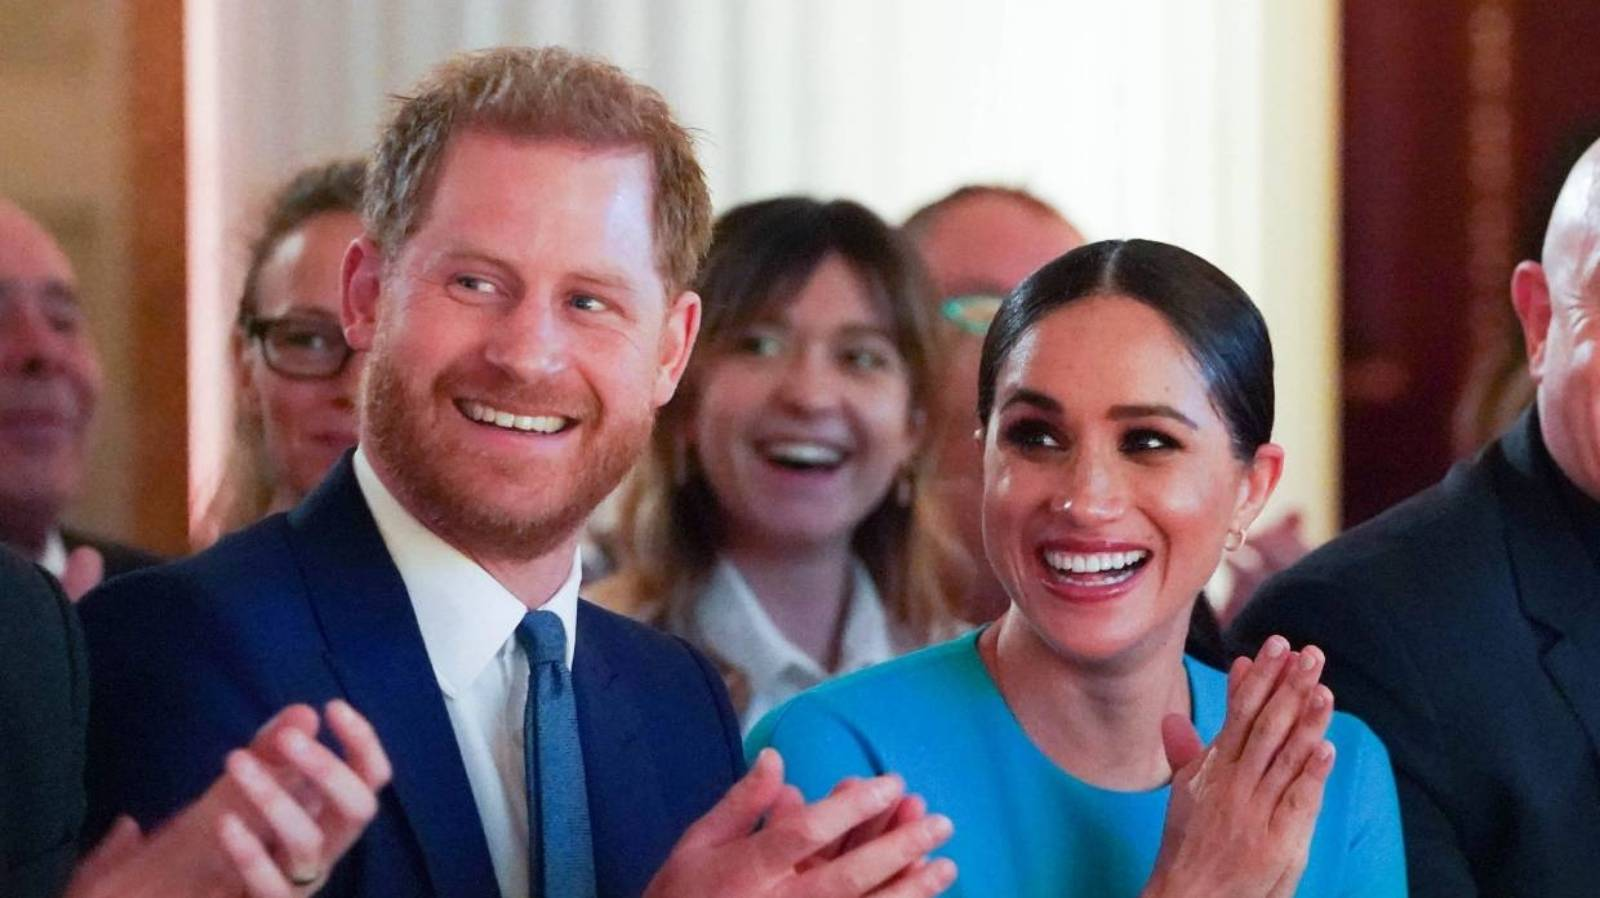 Finding Freedom book full of mistakes - Meghan Markle lawyer